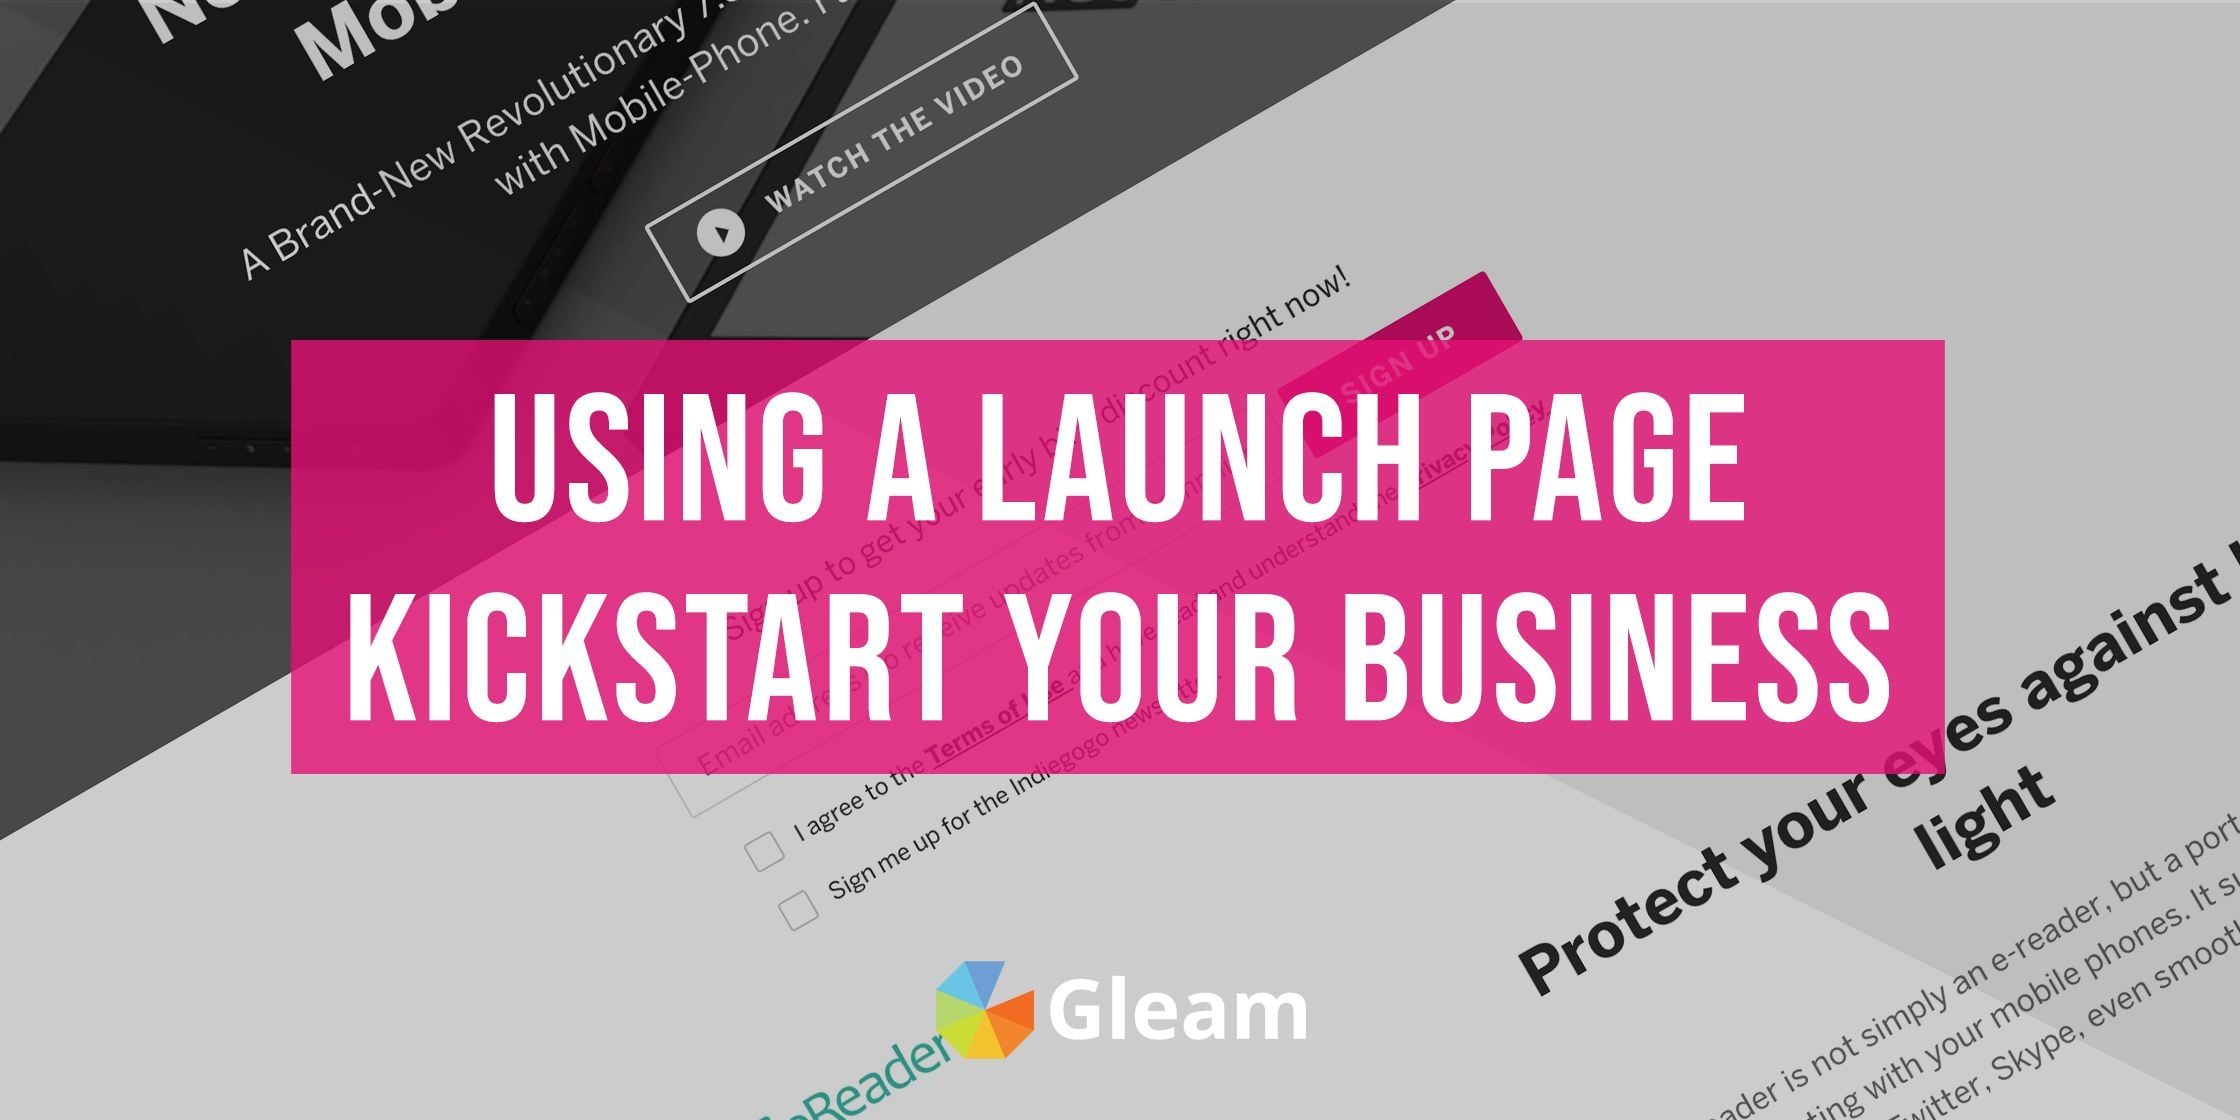 Capture Emails With Pre-Launch Landing Pages: Examples & Recommended Tools